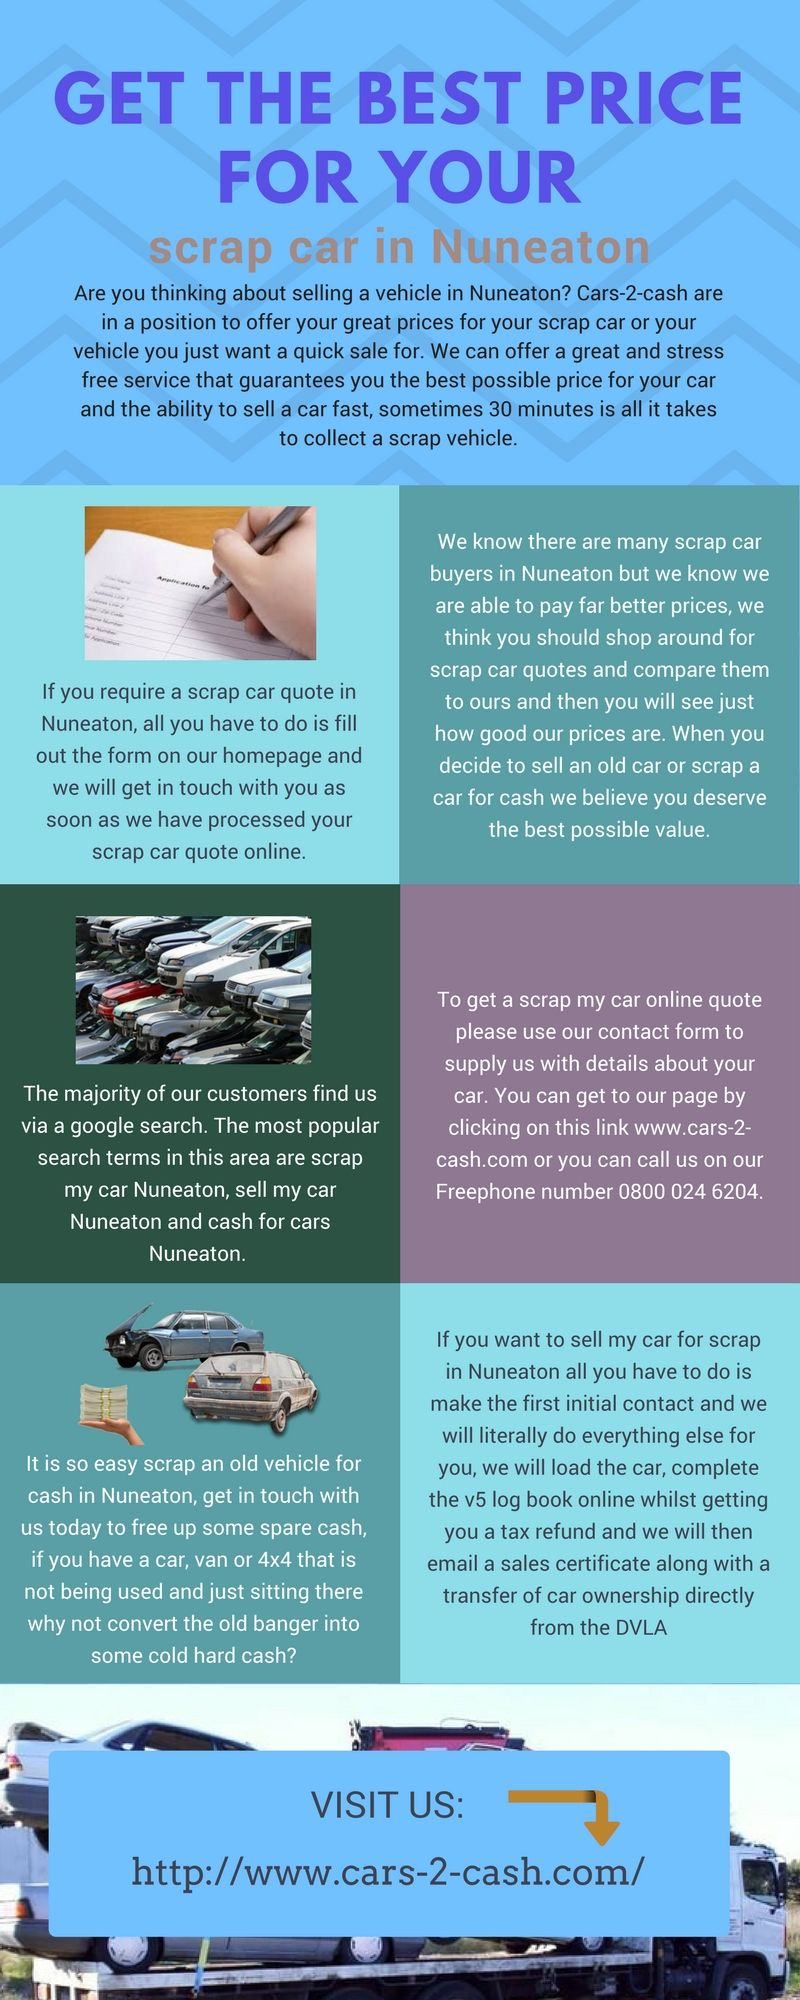 Are you thinking about selling a vehicle in Nuneaton? Cars-2-cash ...